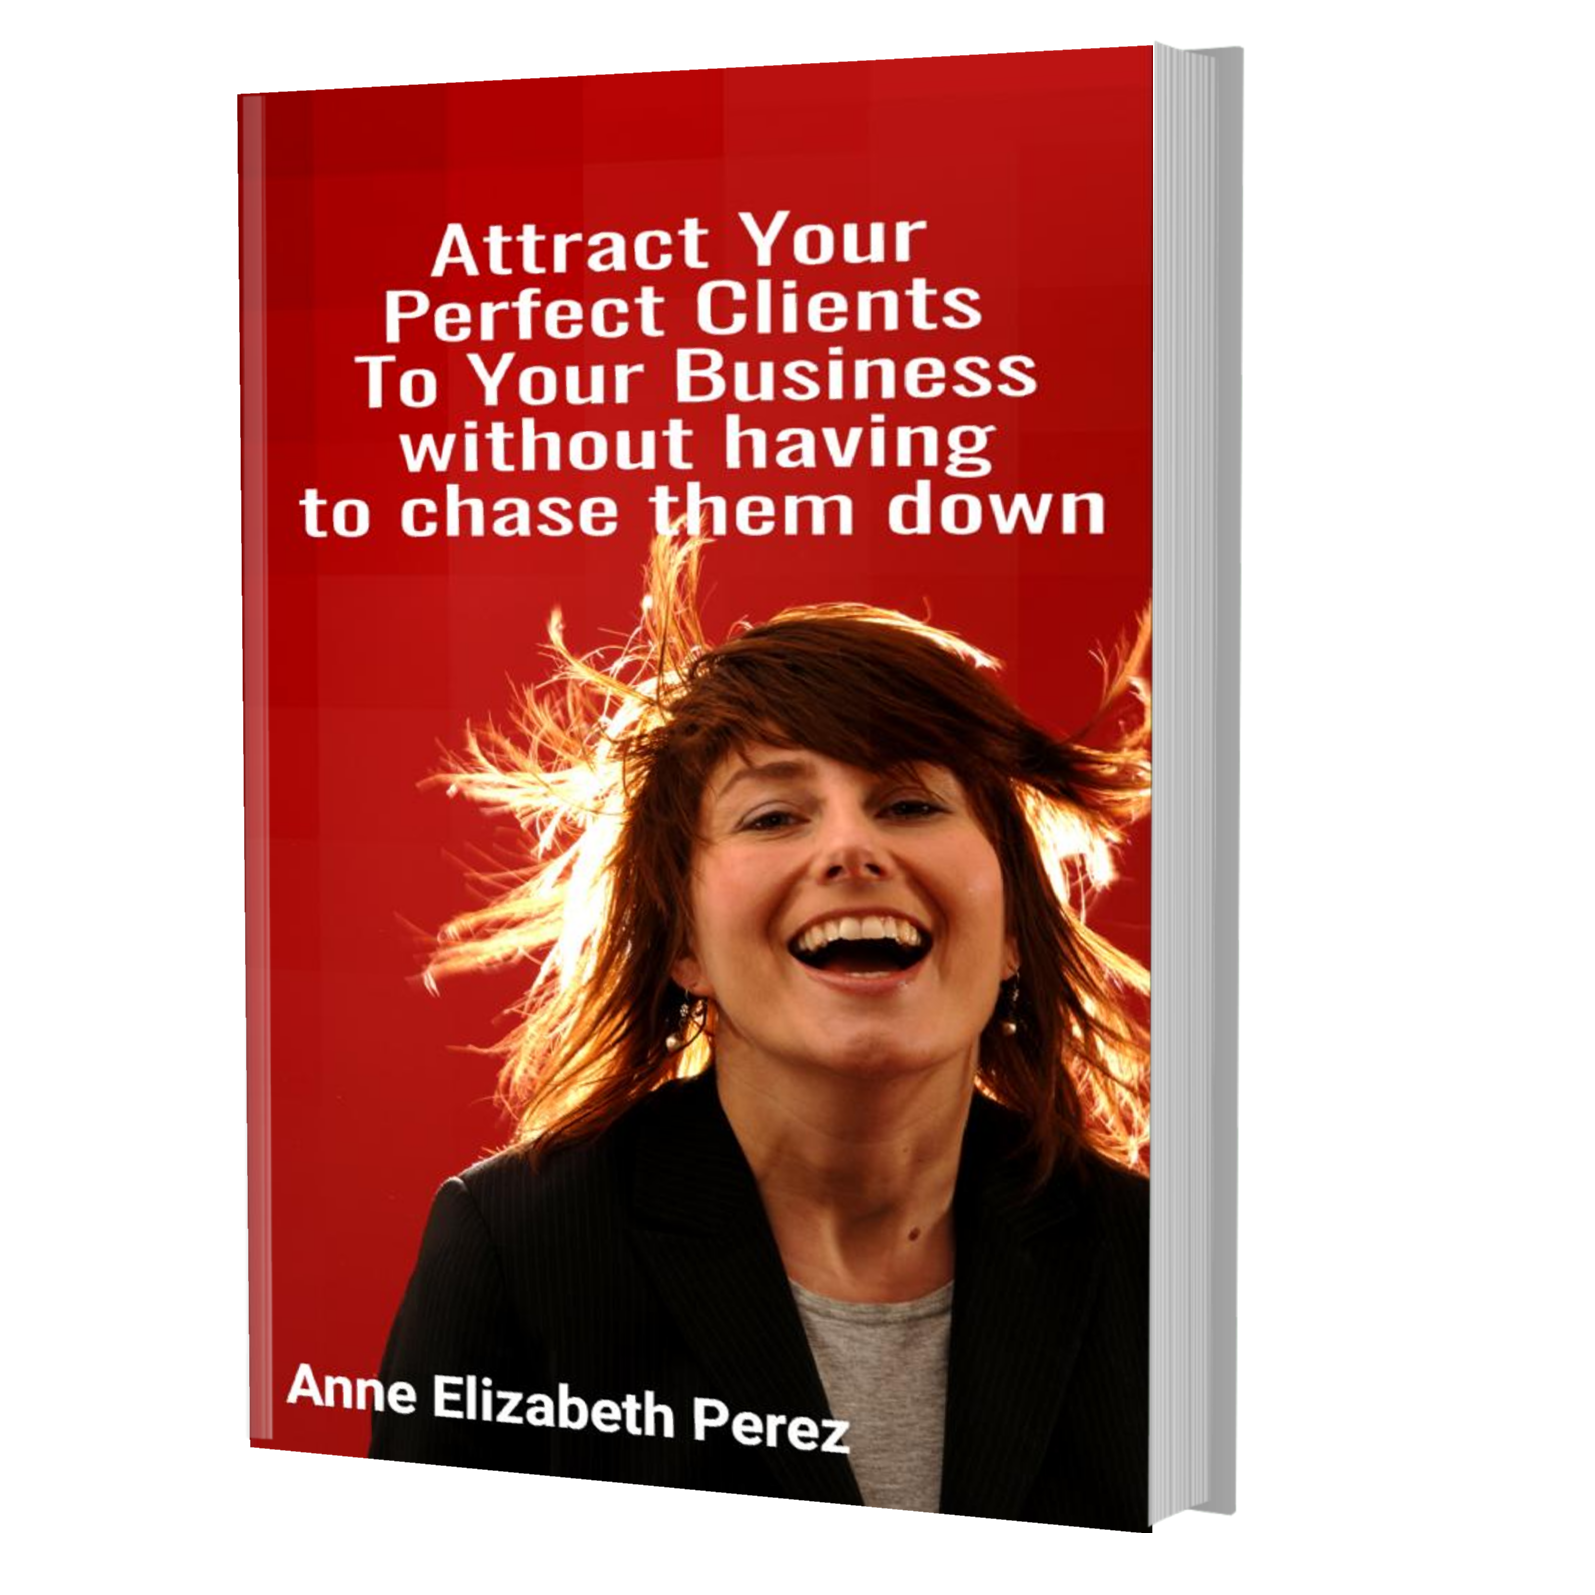 'Attract Your Perfect Clients To Your Business Without Having To Chase Them Down'